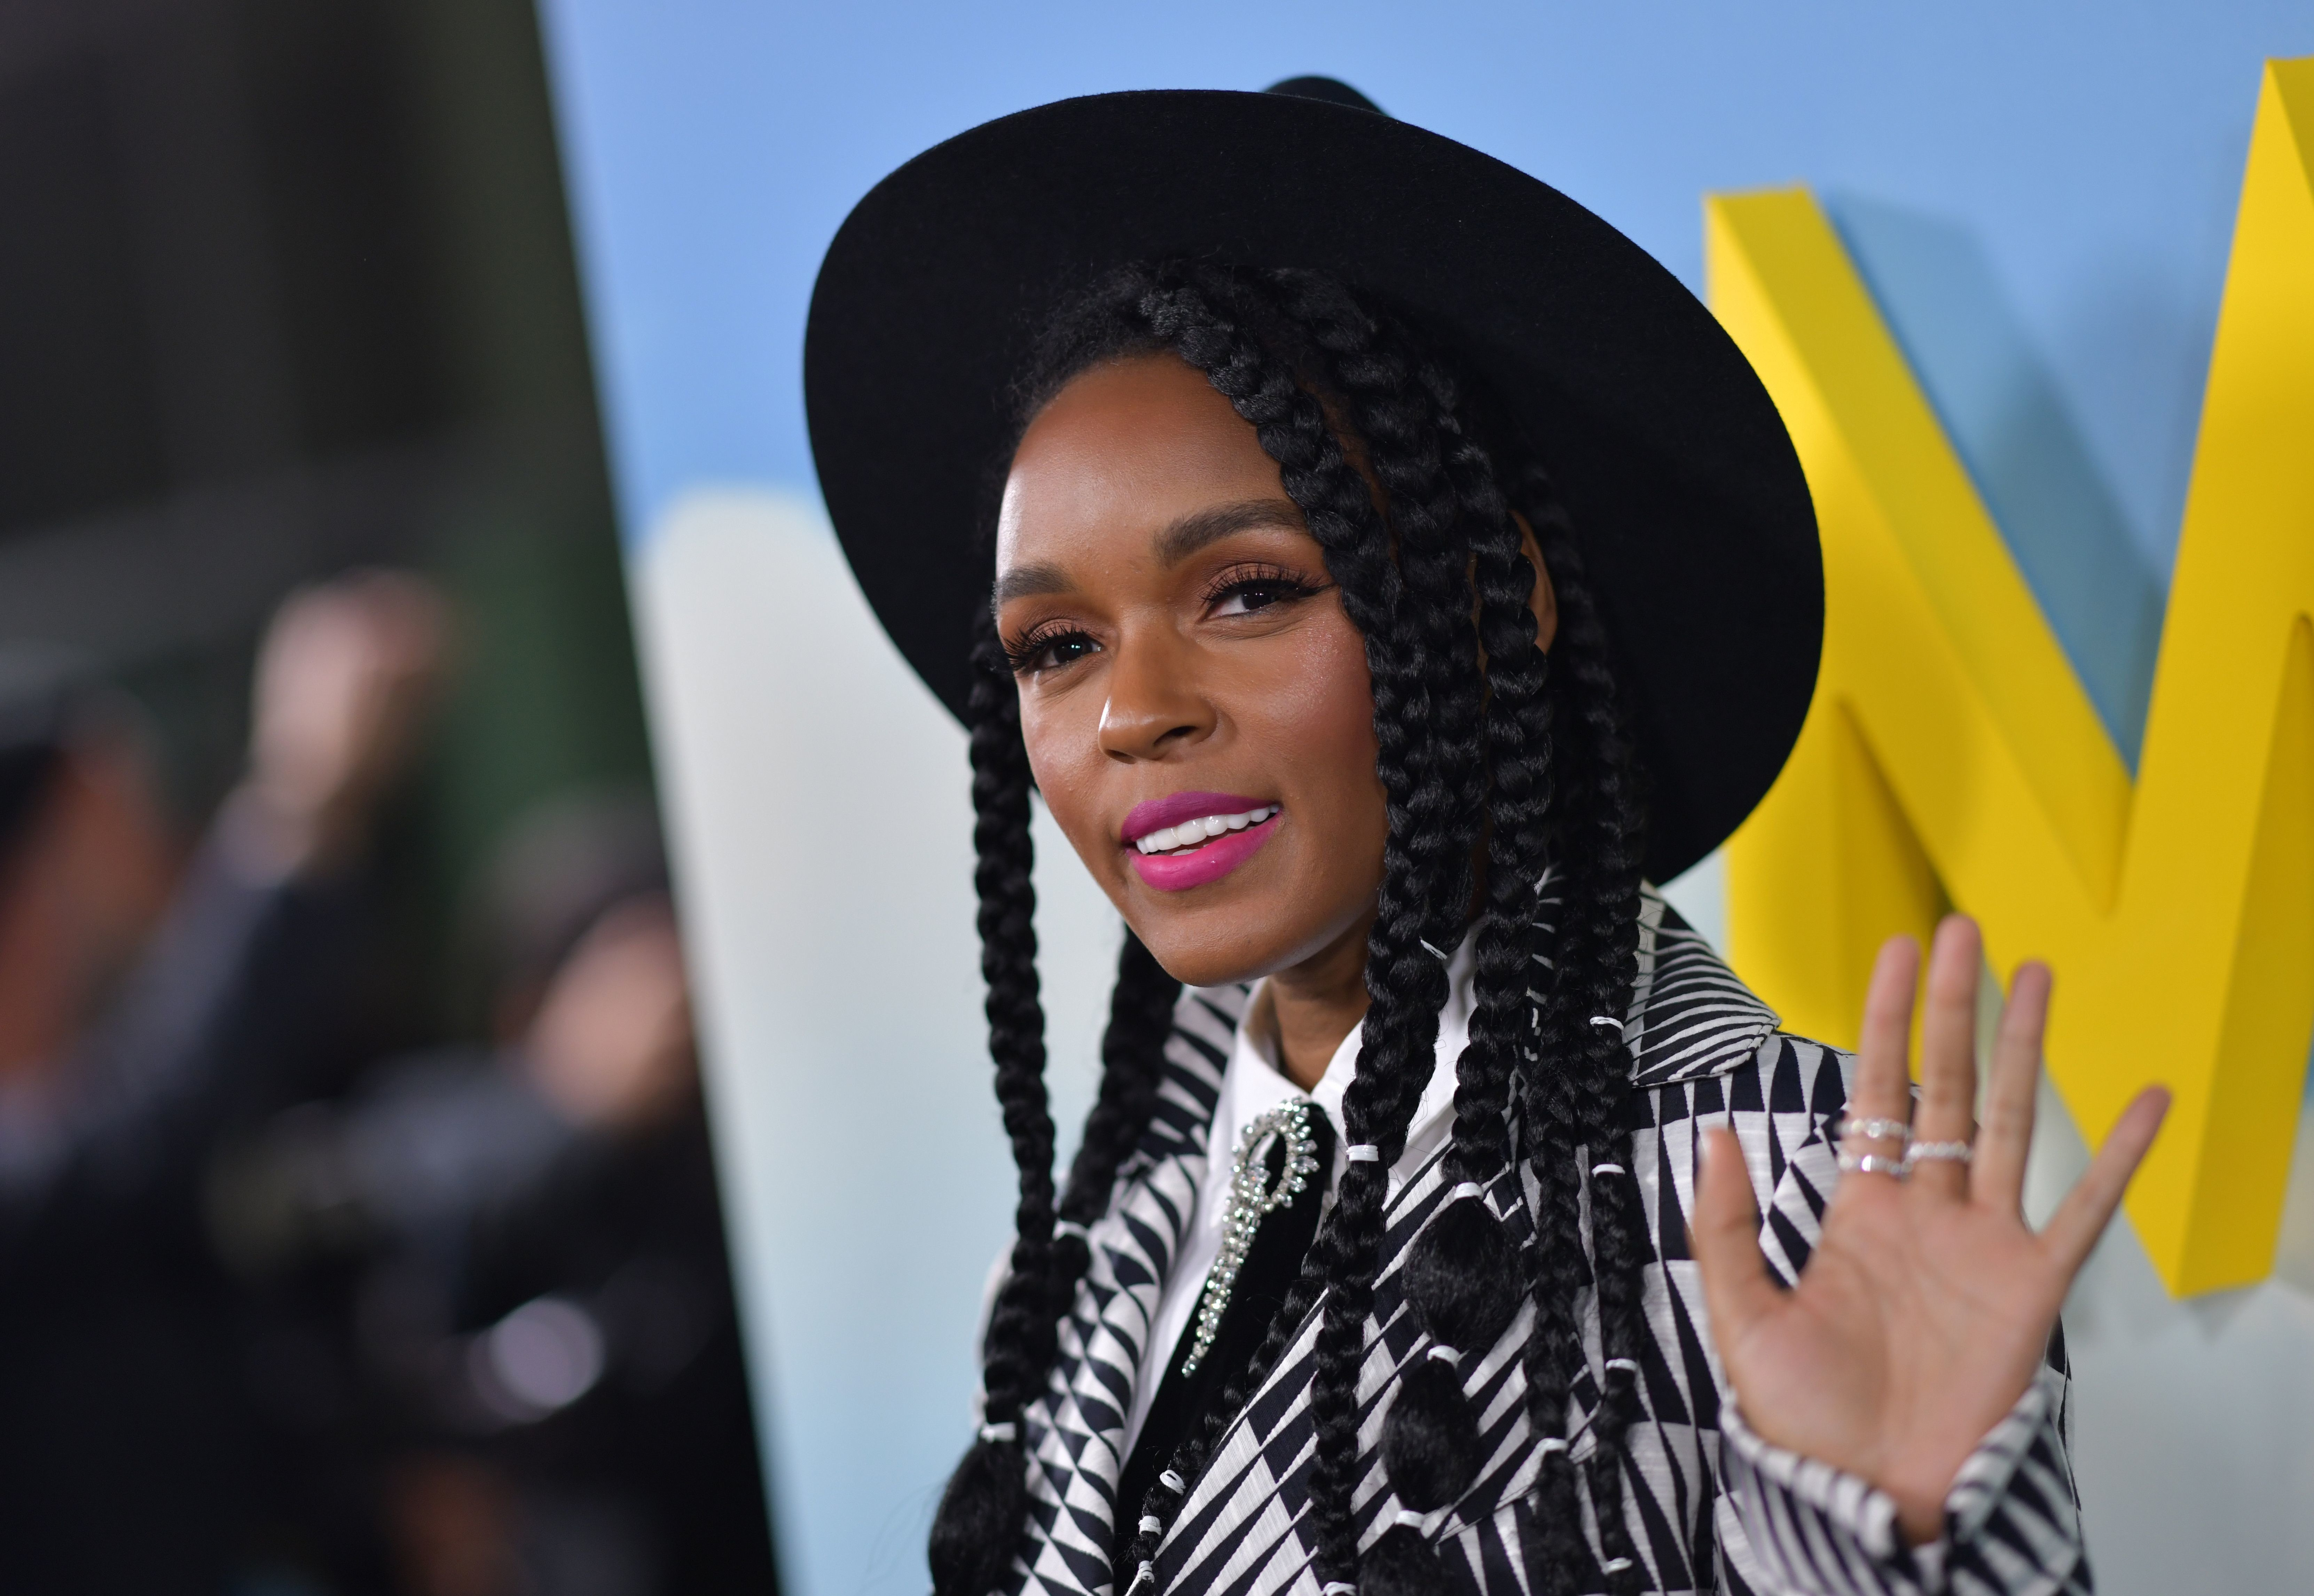 US actress/singer Janelle Monáe attends the premiere of 'Welcome to Marwen' at the Arclight theatre in Hollywood on December 10, 2018. (Photo by Chris Delmas / AFP)        (Photo credit should read CHRIS DELMAS/AFP/Getty Images)